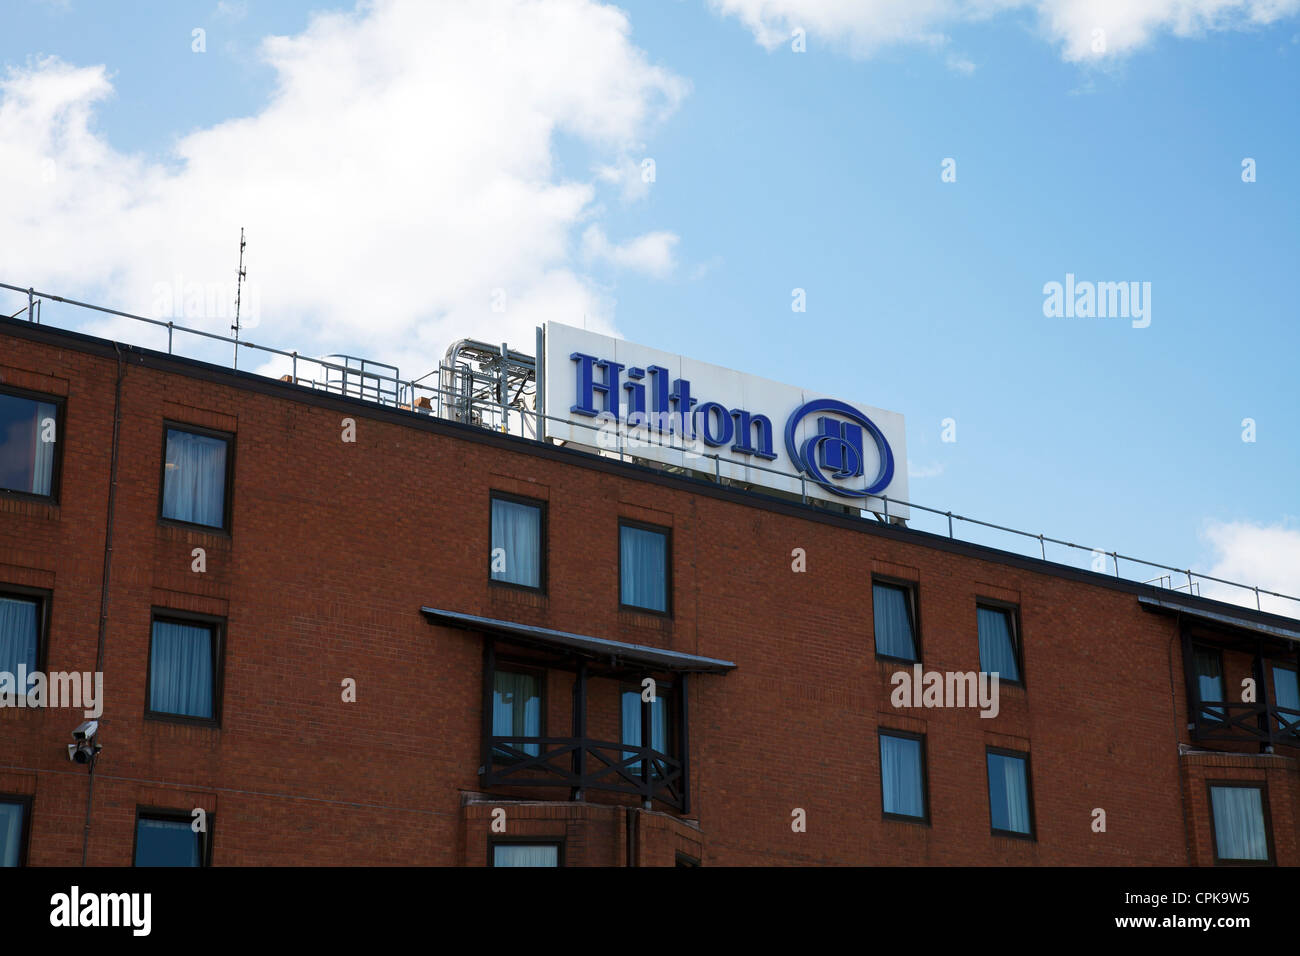 Hilton Hotel at Manchester Airport front sign - Stock Image